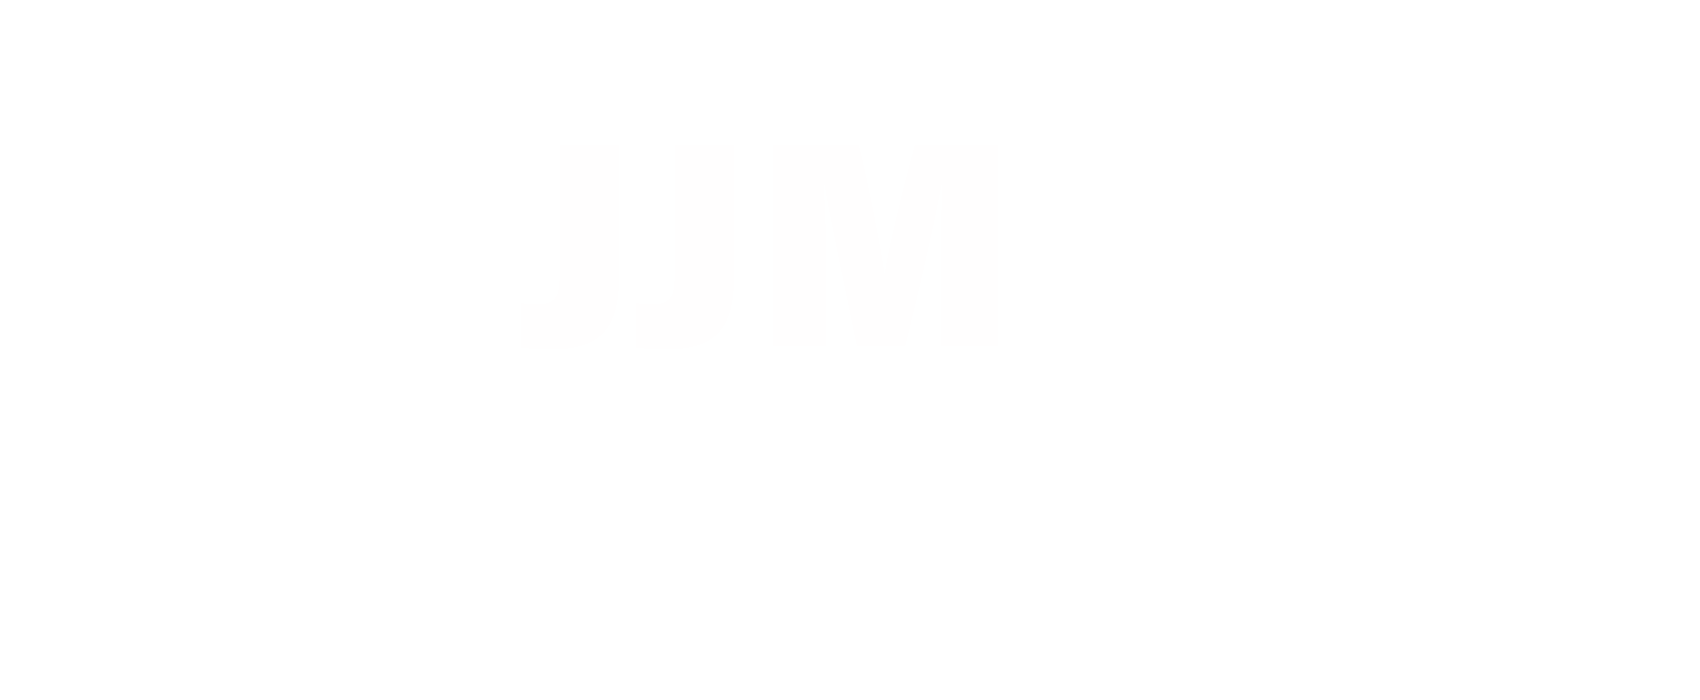 JJM Home Improvements